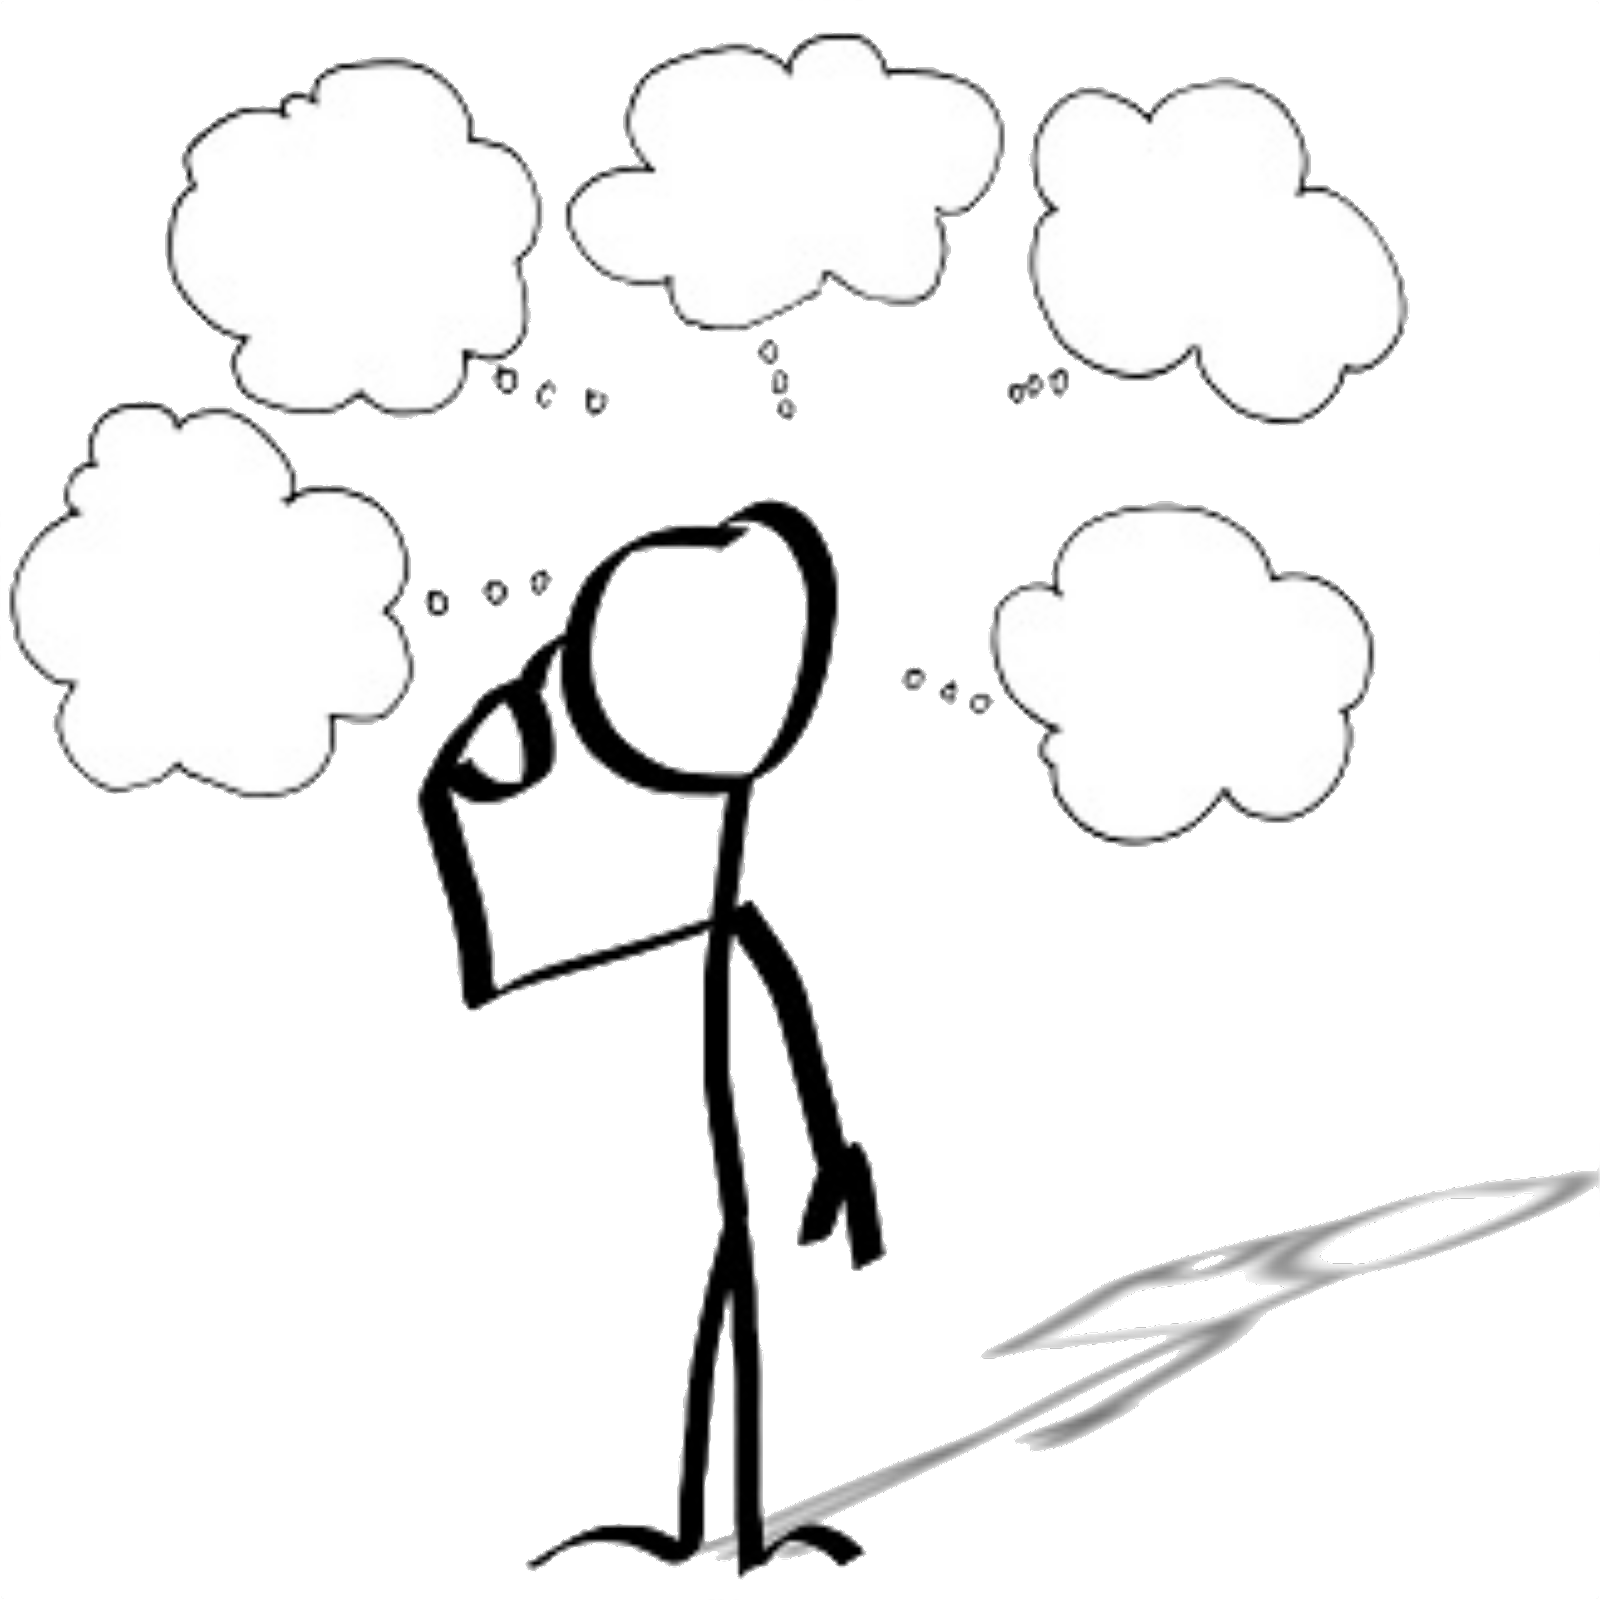 icon of a person with several thought clouds above their head